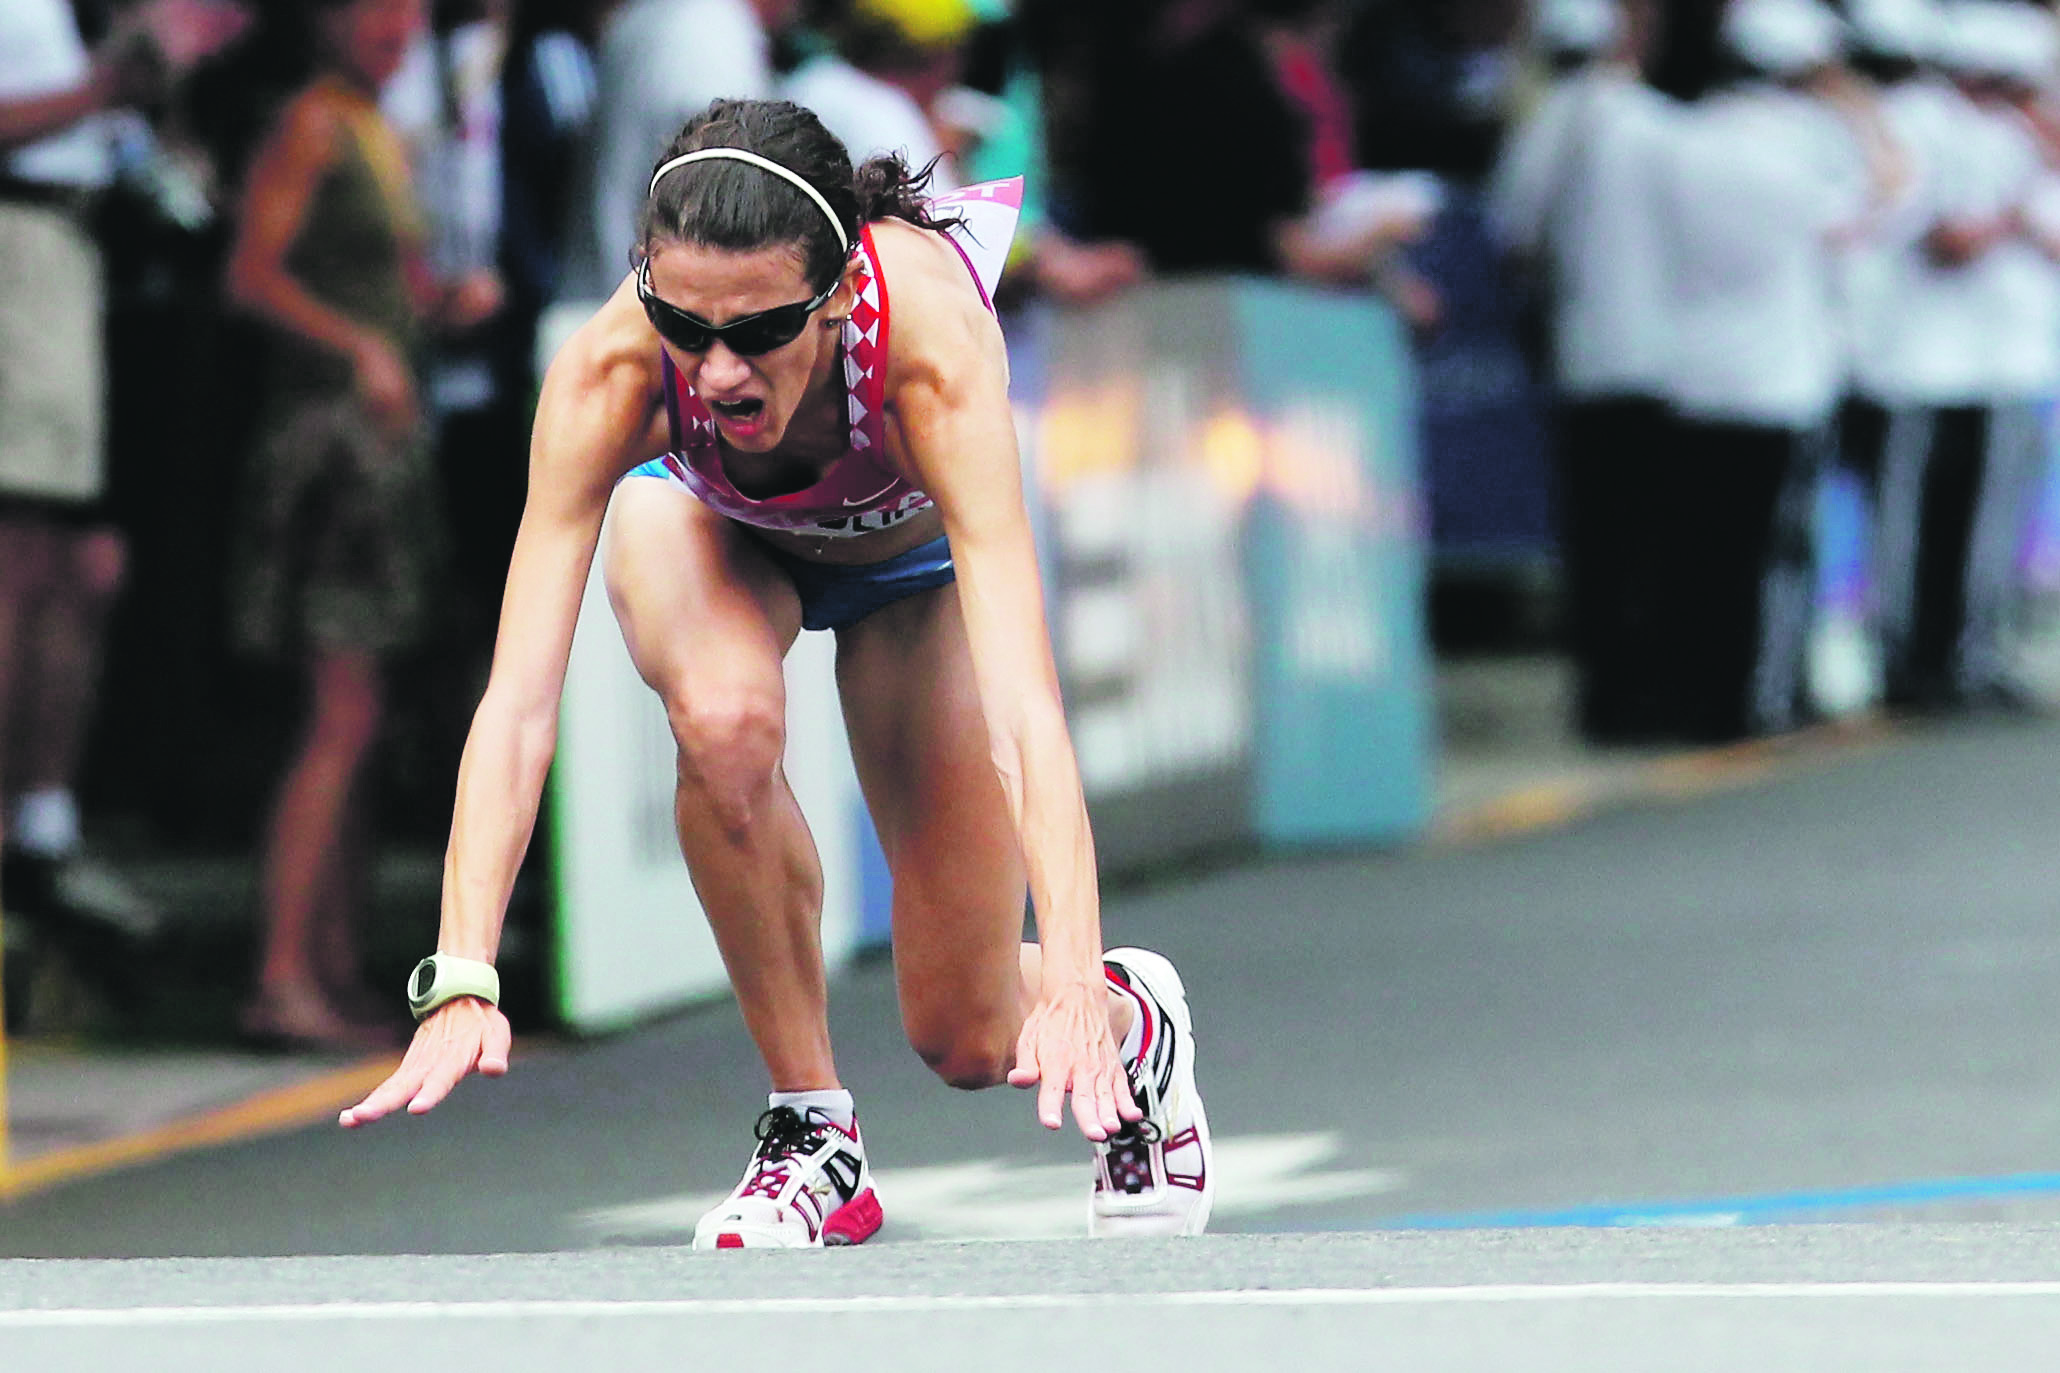 DAEGU, SOUTH KOREA - AUGUST 27:  Lisa Christina Stublic of Croatia falls at the finish line after competing in the women's marathon during day one of the 13th IAAF World Athletics Championships at the Daegu Stadium on August 27, 2011 in Daegu, South Korea.  (Photo by Chris McGrath/Getty Images)